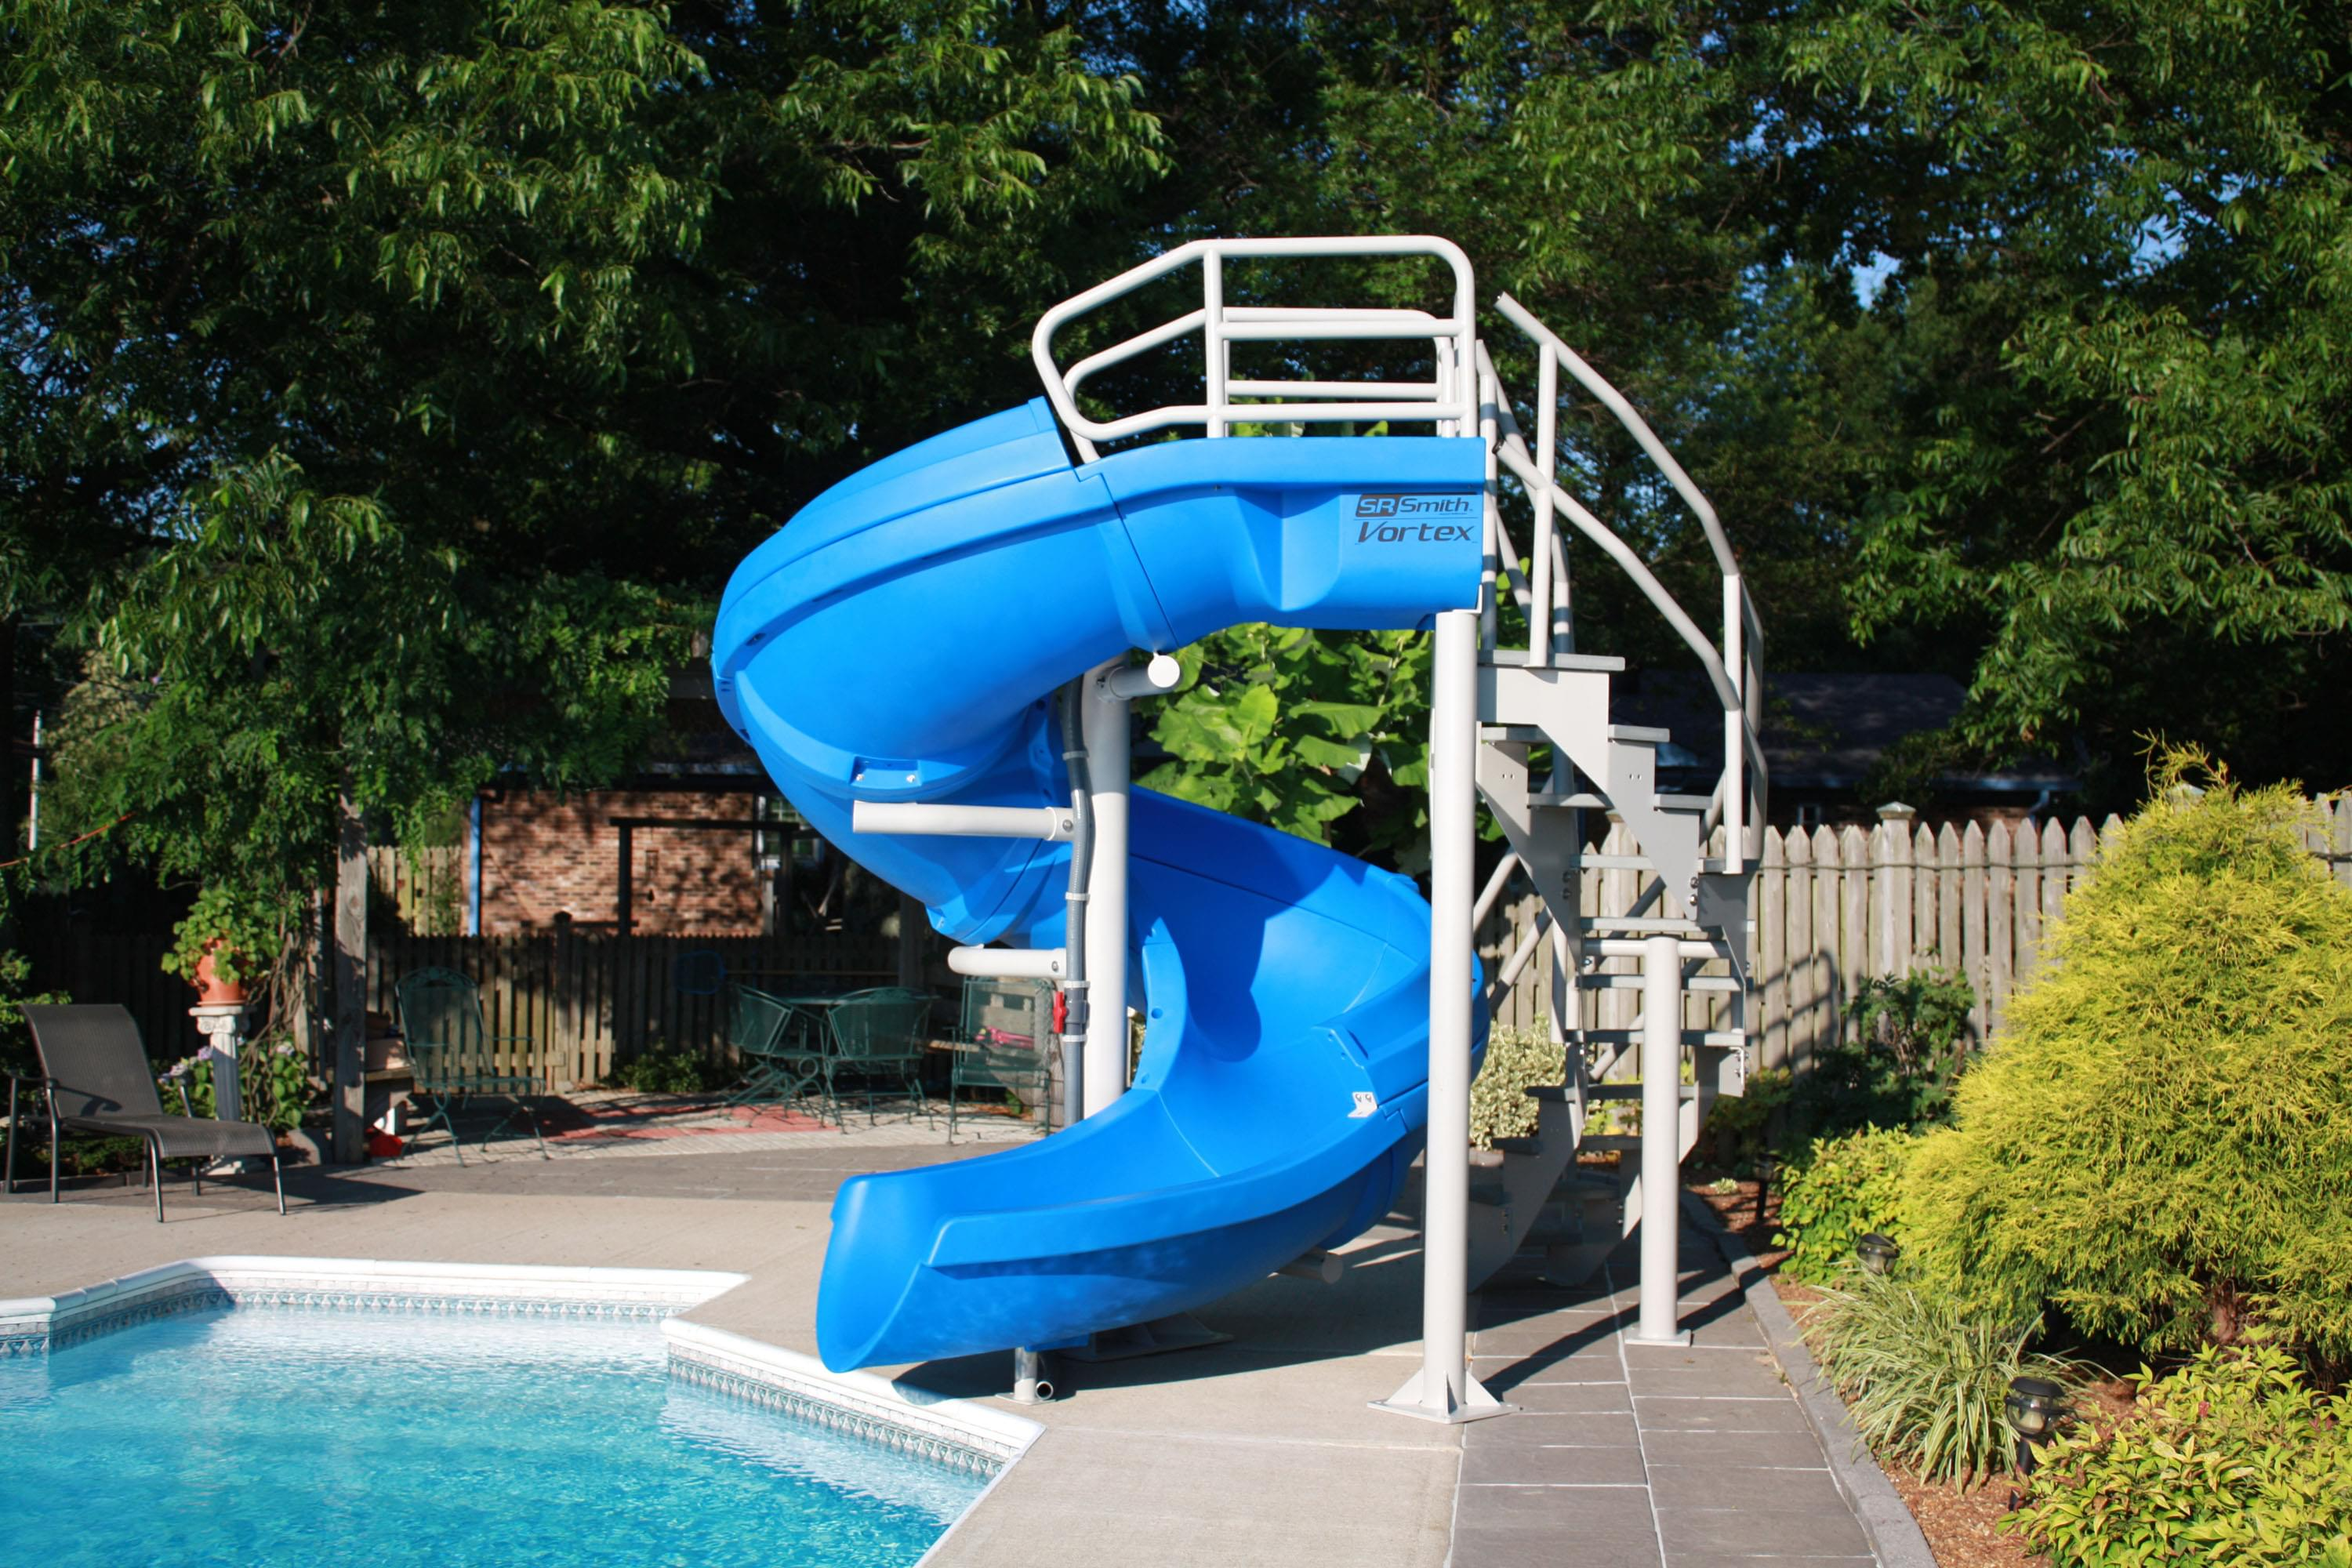 Vortex inground pool slide half tube and staircase blue pool supplies canada for Swimming pool water slide parts